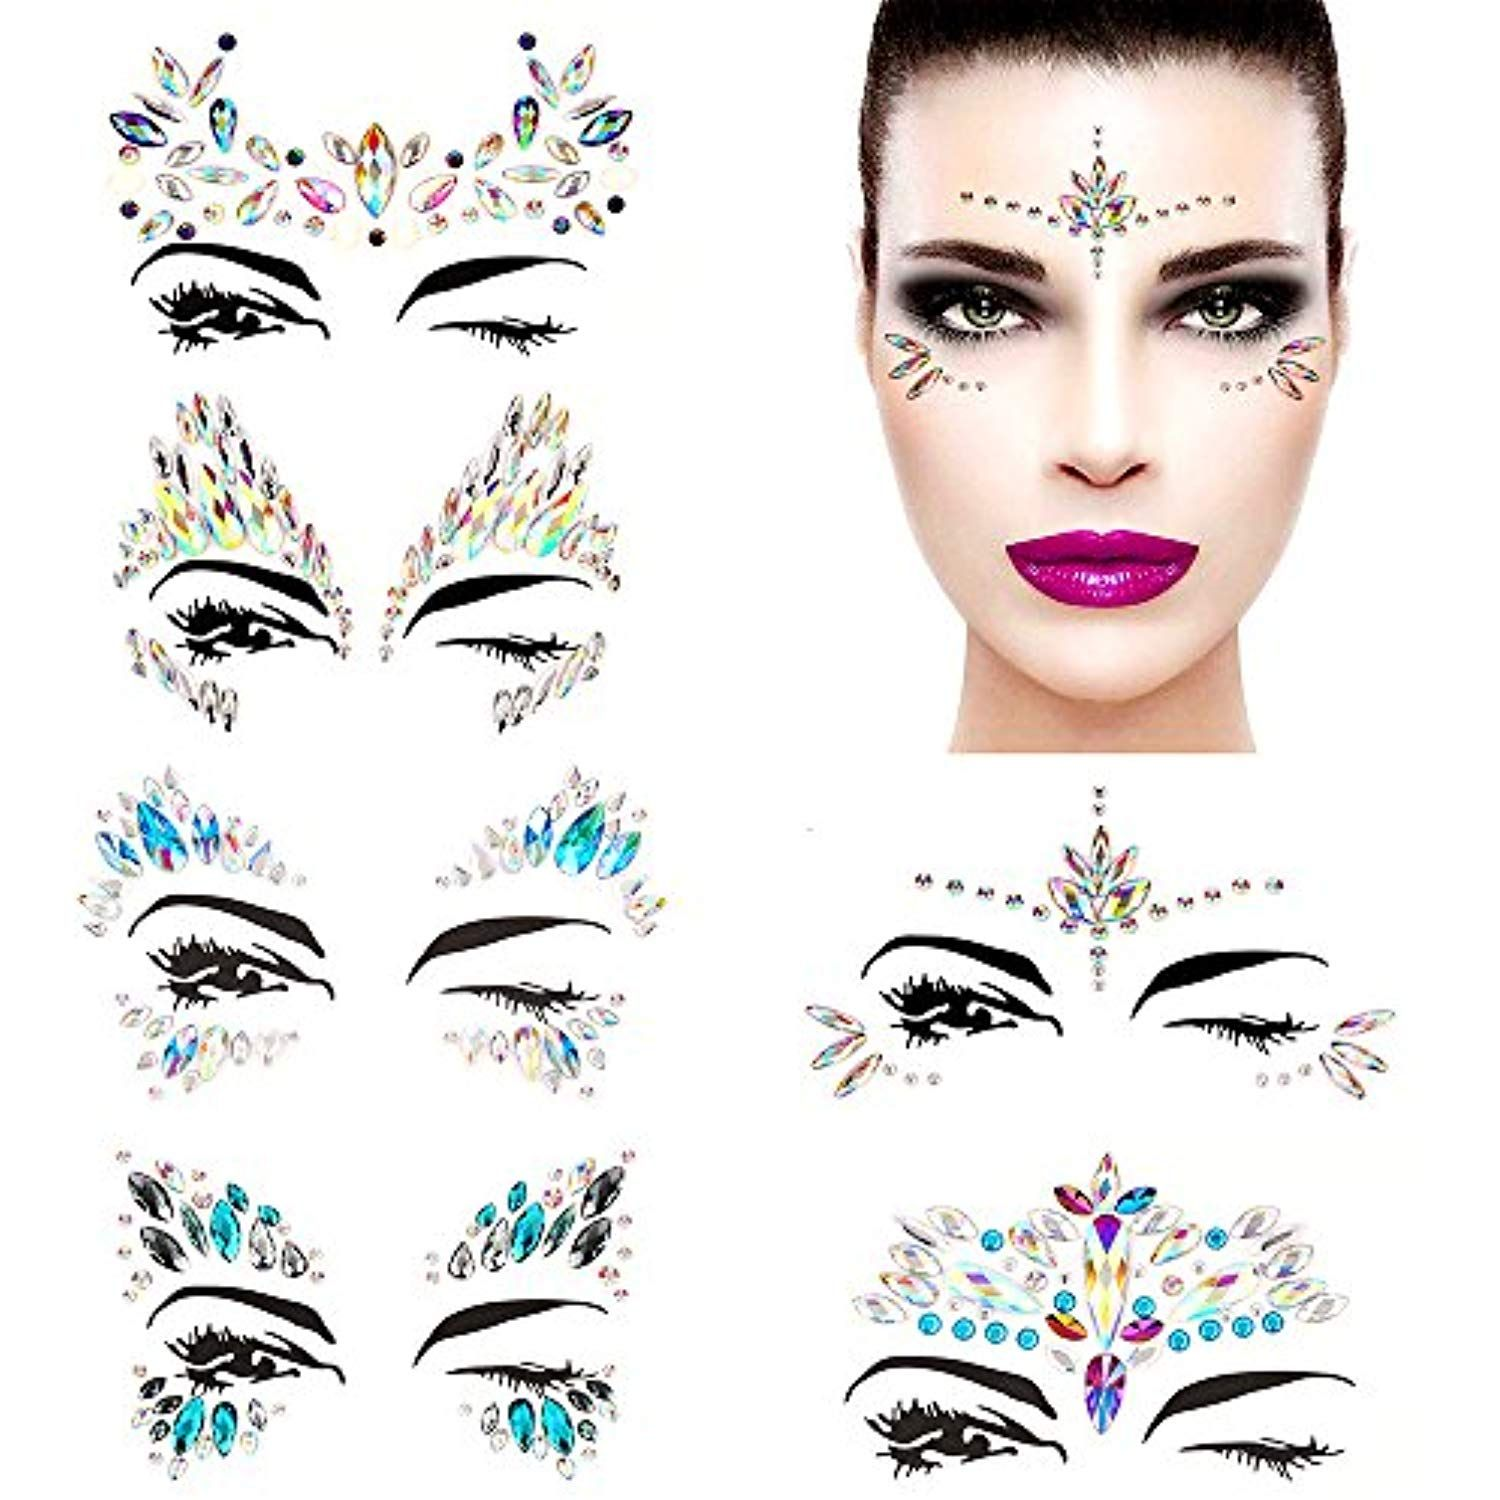 Bling 6 Sets Self-adhesive Mermaid Face Gems Stickers 52344fe11e47